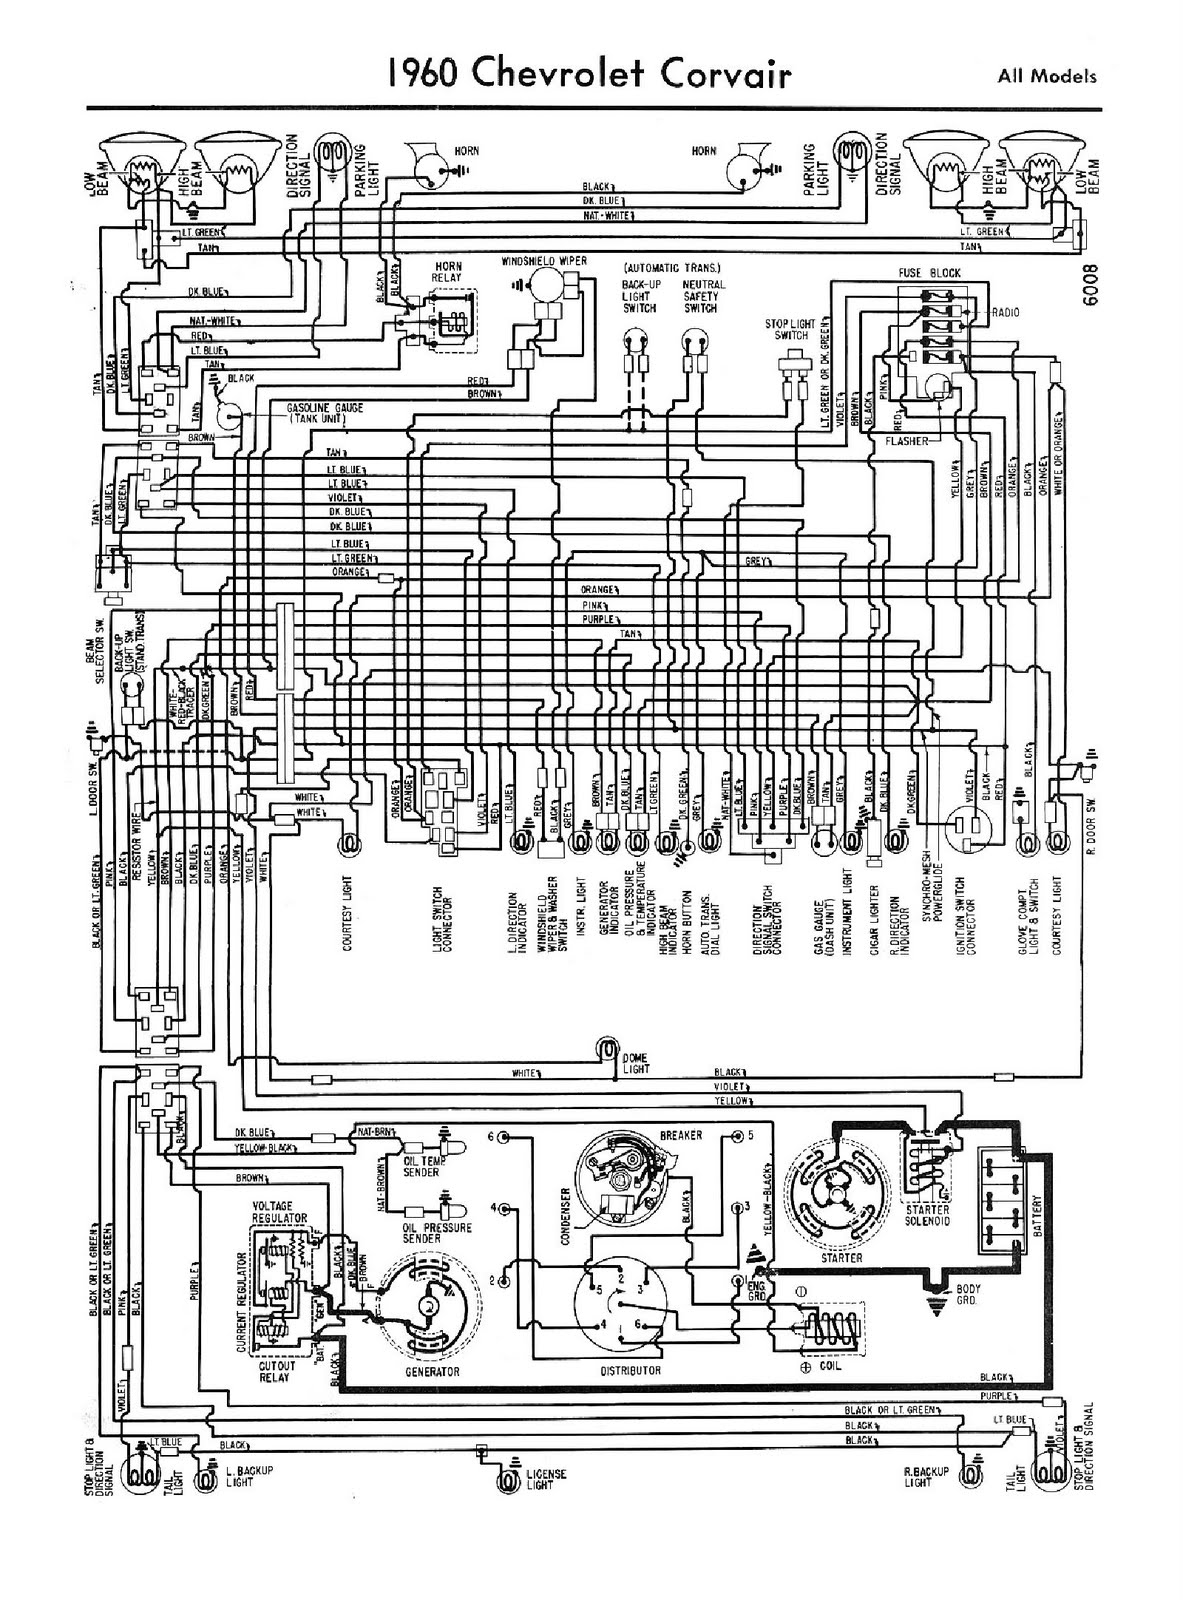 1960 Chevy Impala Wiring Diagram Blog About Diagrams For Truck Online Books Of U2022 2003